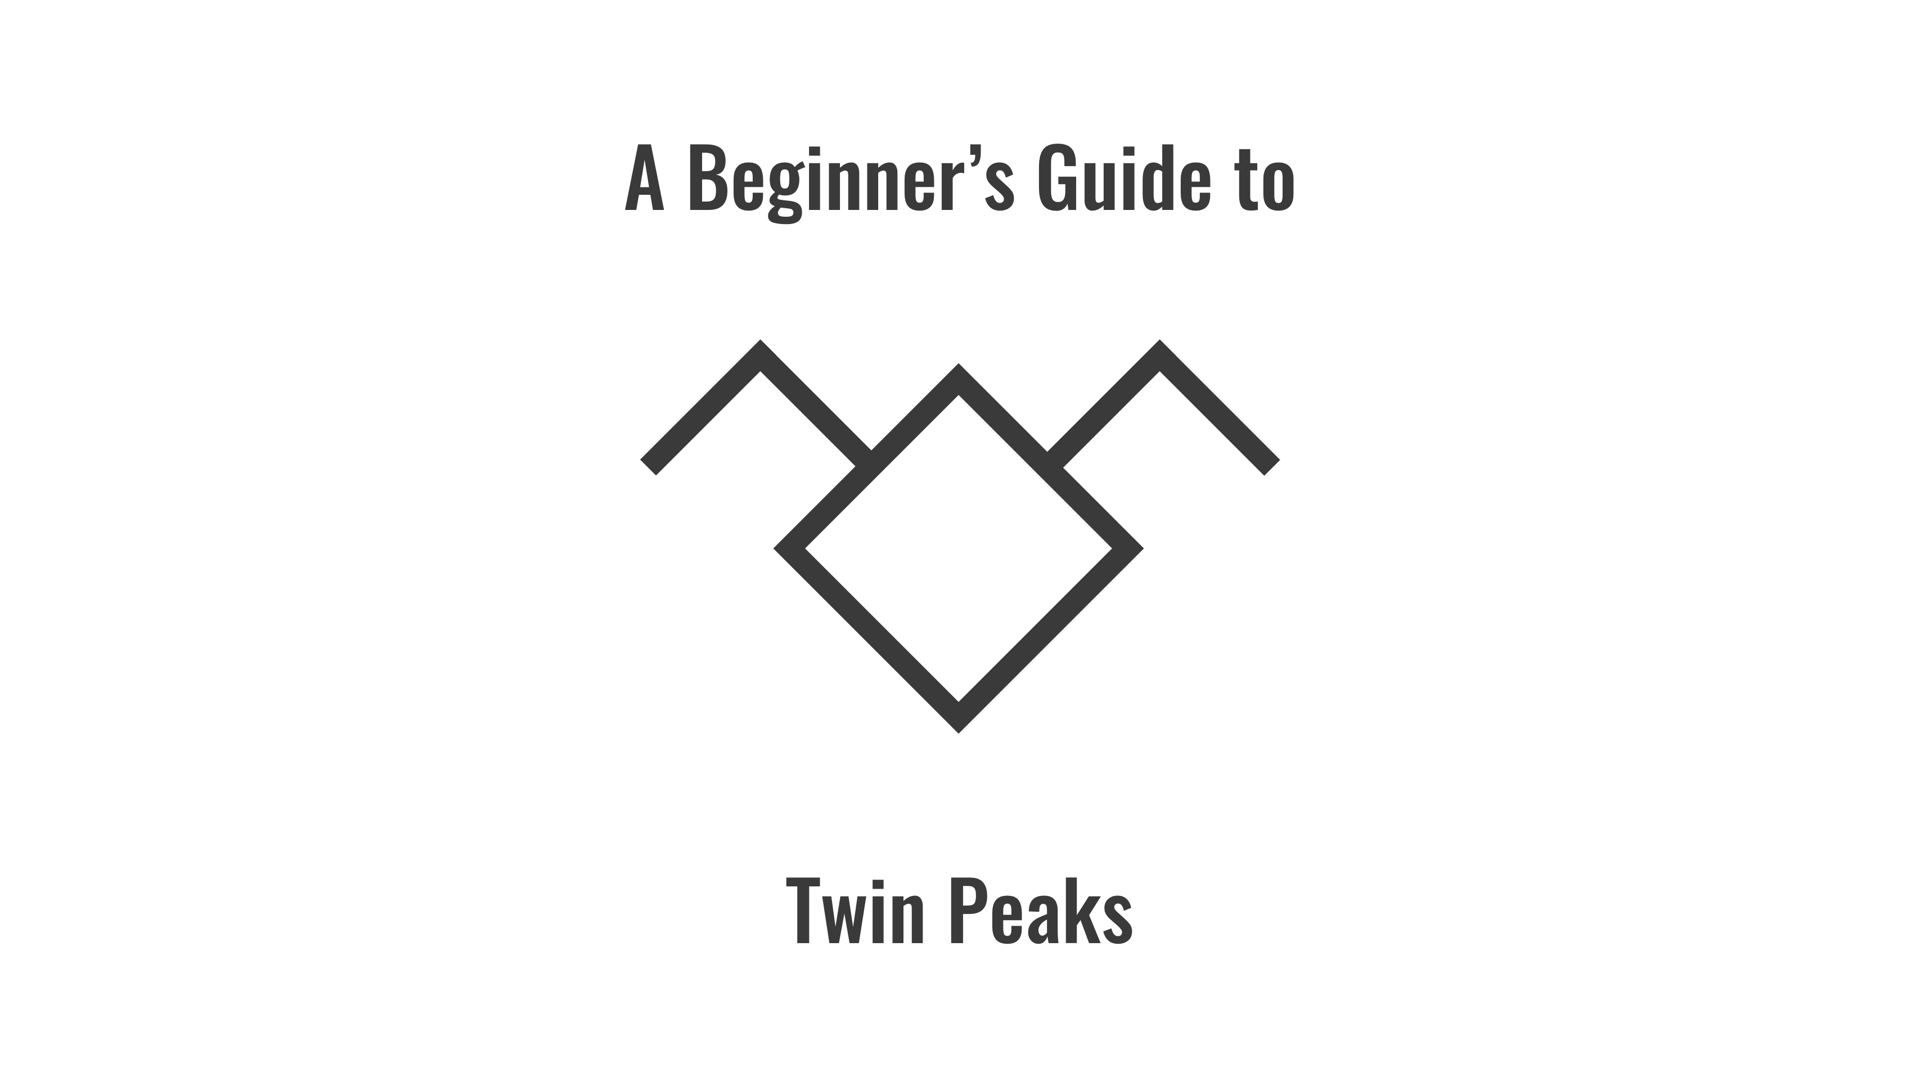 Twin Peaks Beginner's Guide with Owl Logo